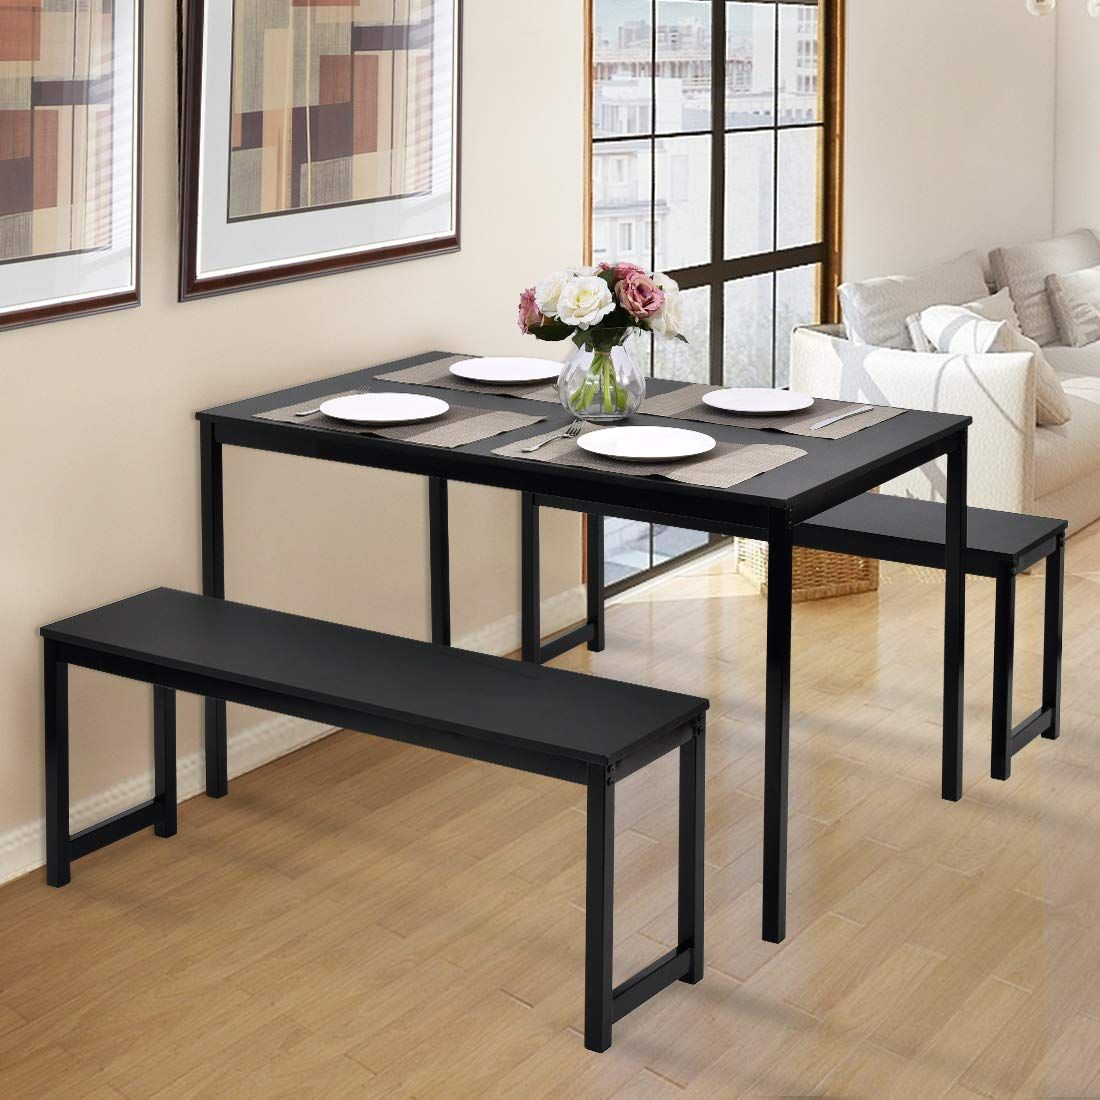 3 Piece Dining Table Set With Two Benches Dining Room Furniture Modern Kitchen Table Wood Dining Decor